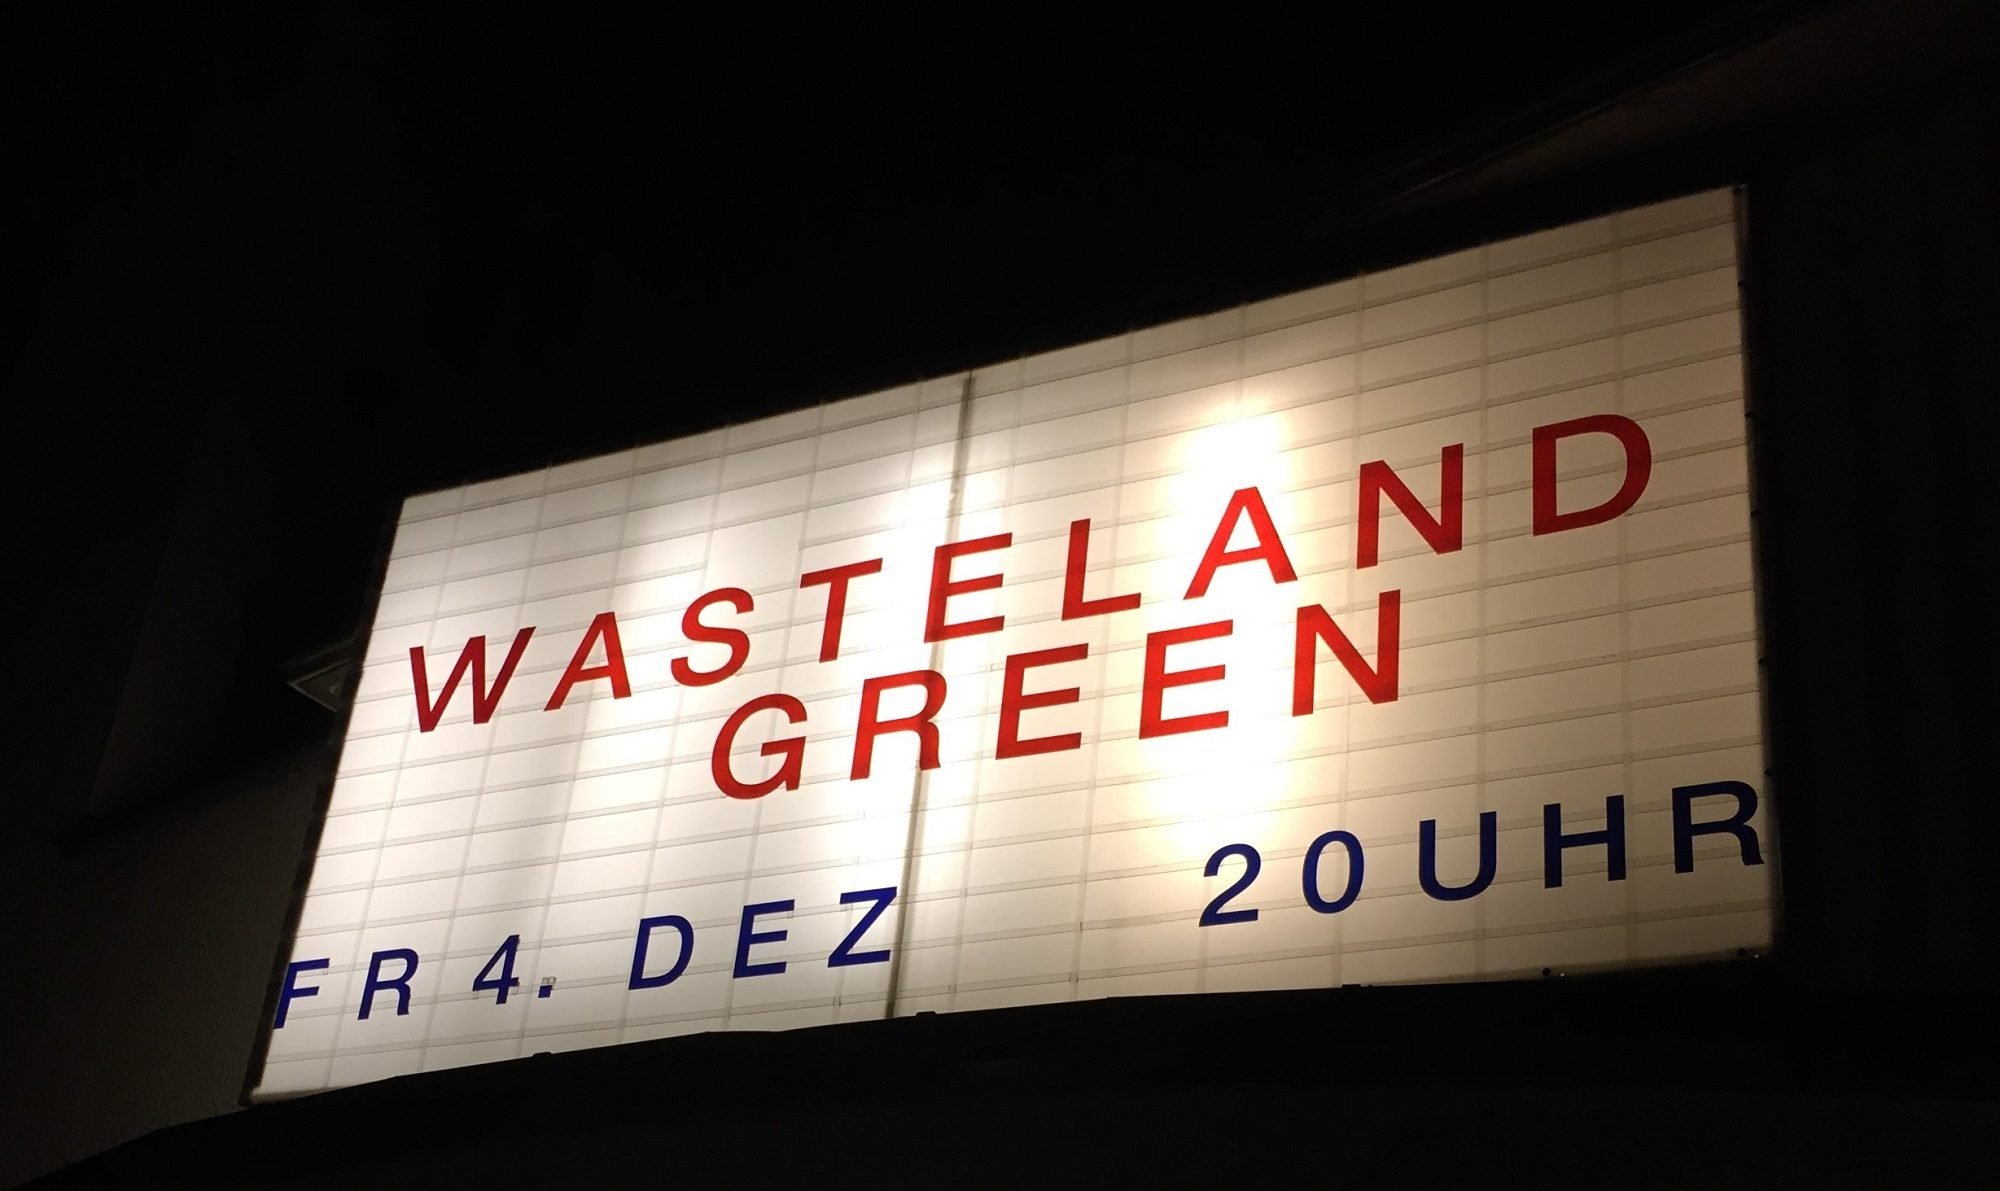 wasteland green